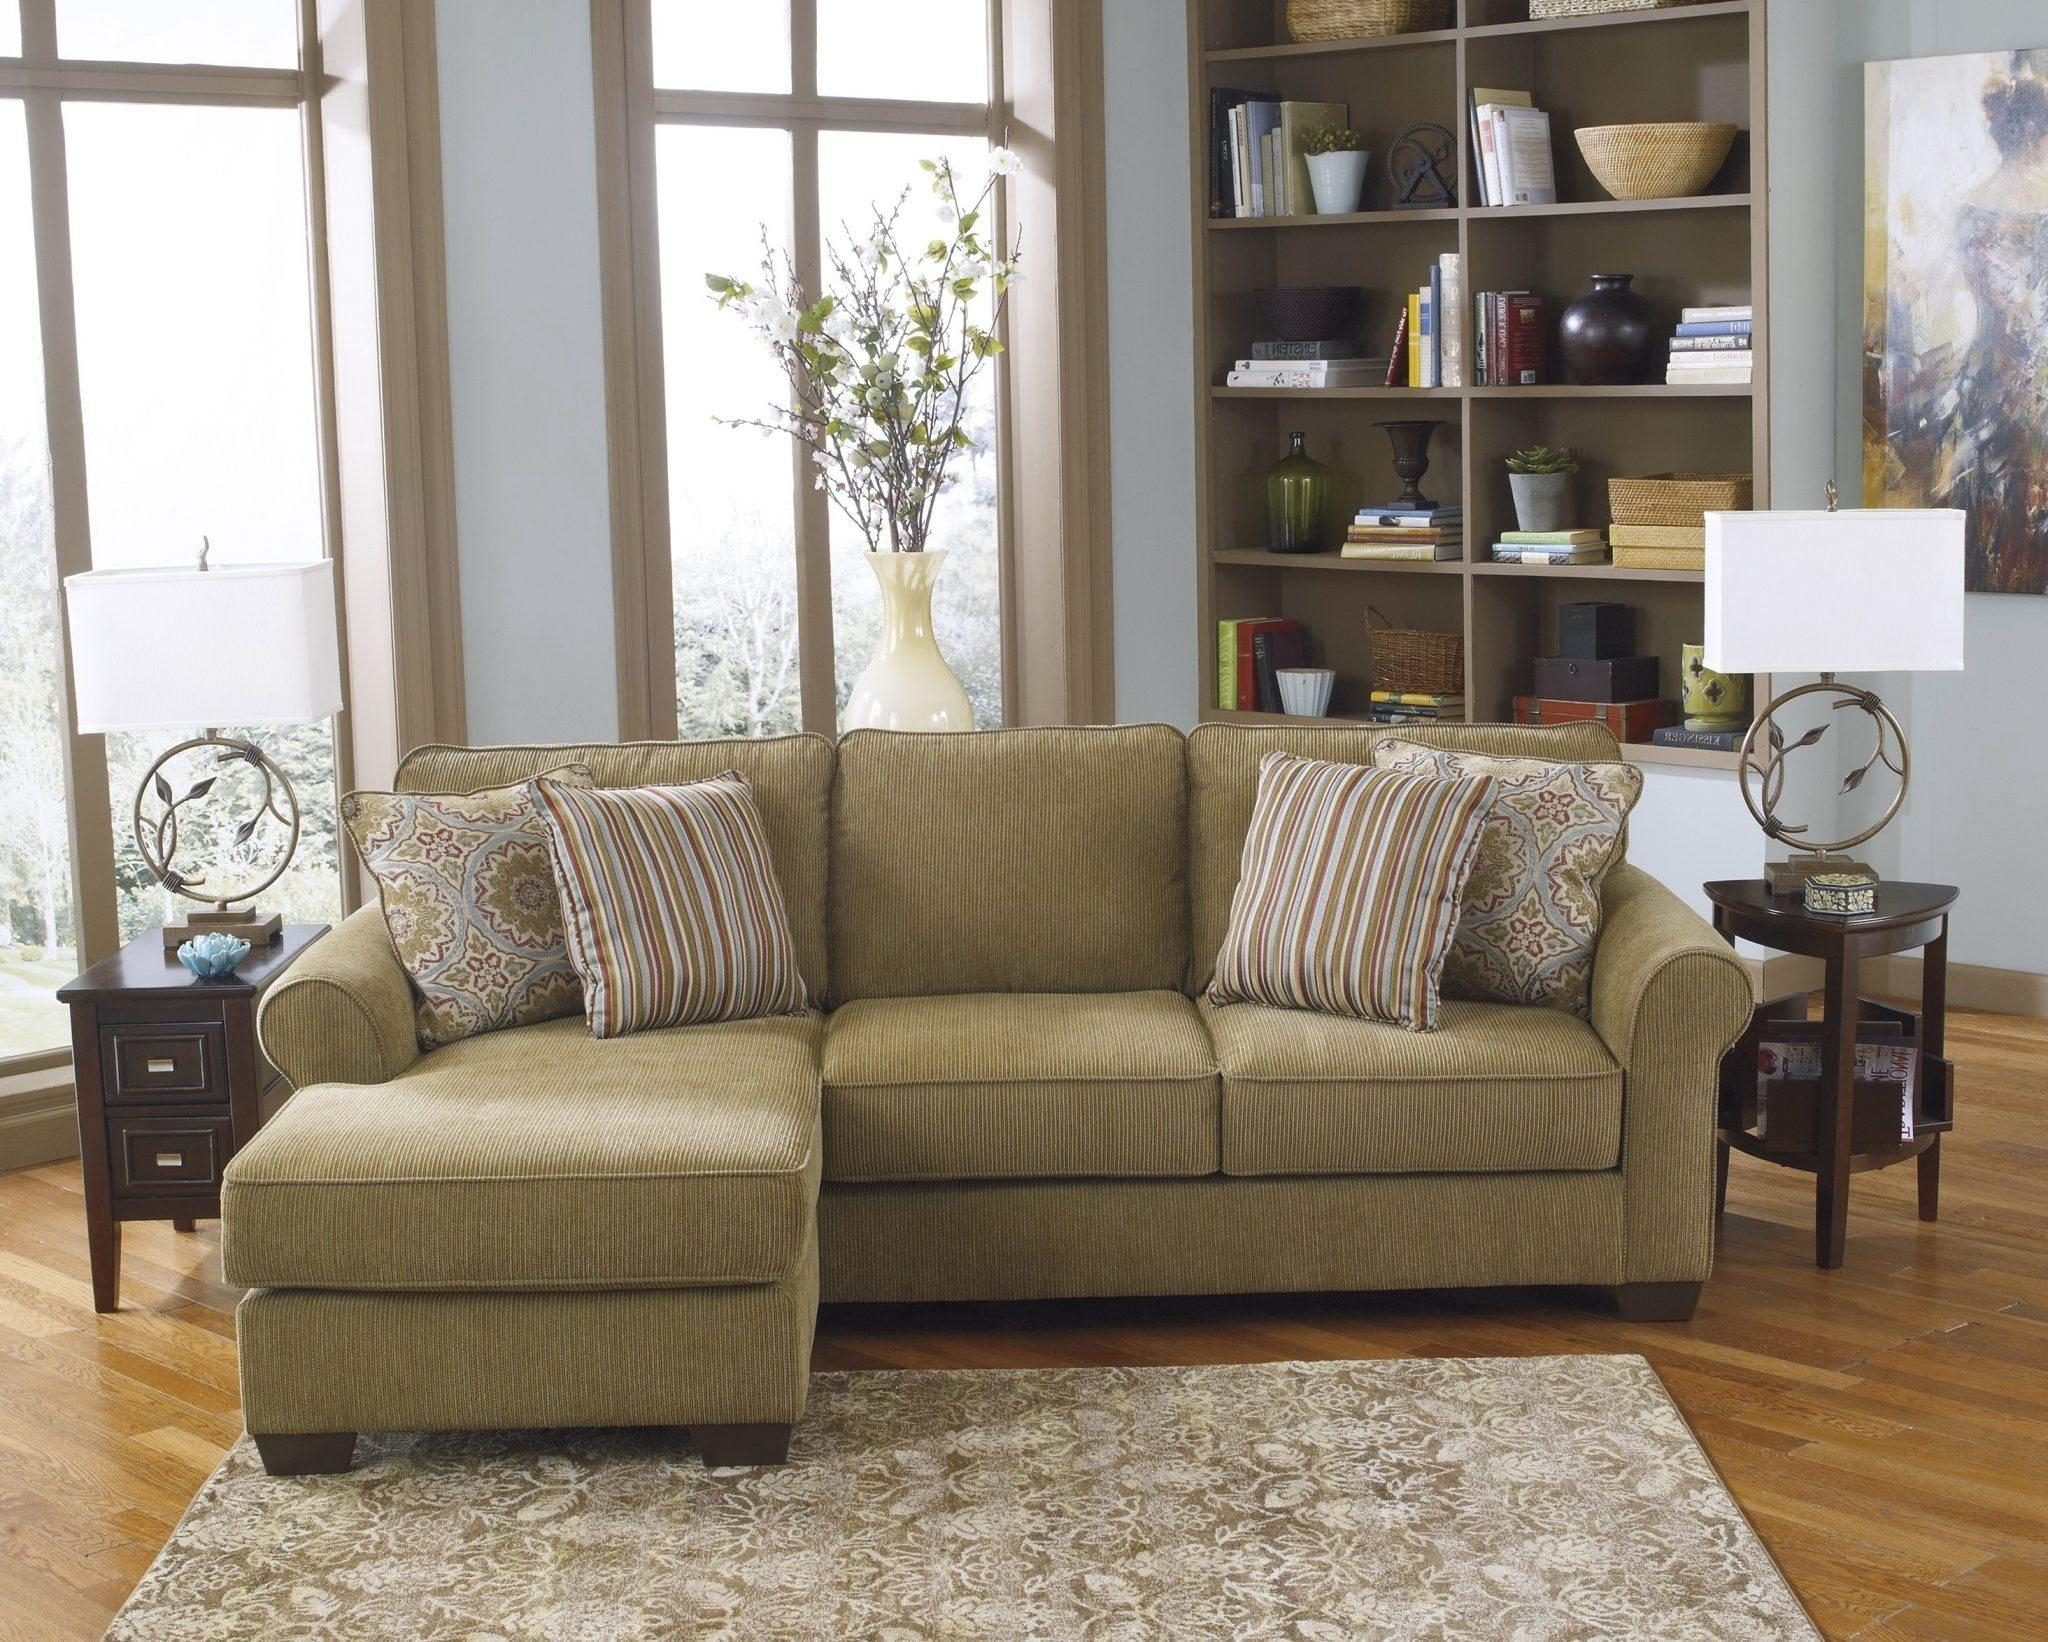 Berkline Sofa | Sofa Gallery | Kengire For Berkline Sofa (View 3 of 20)